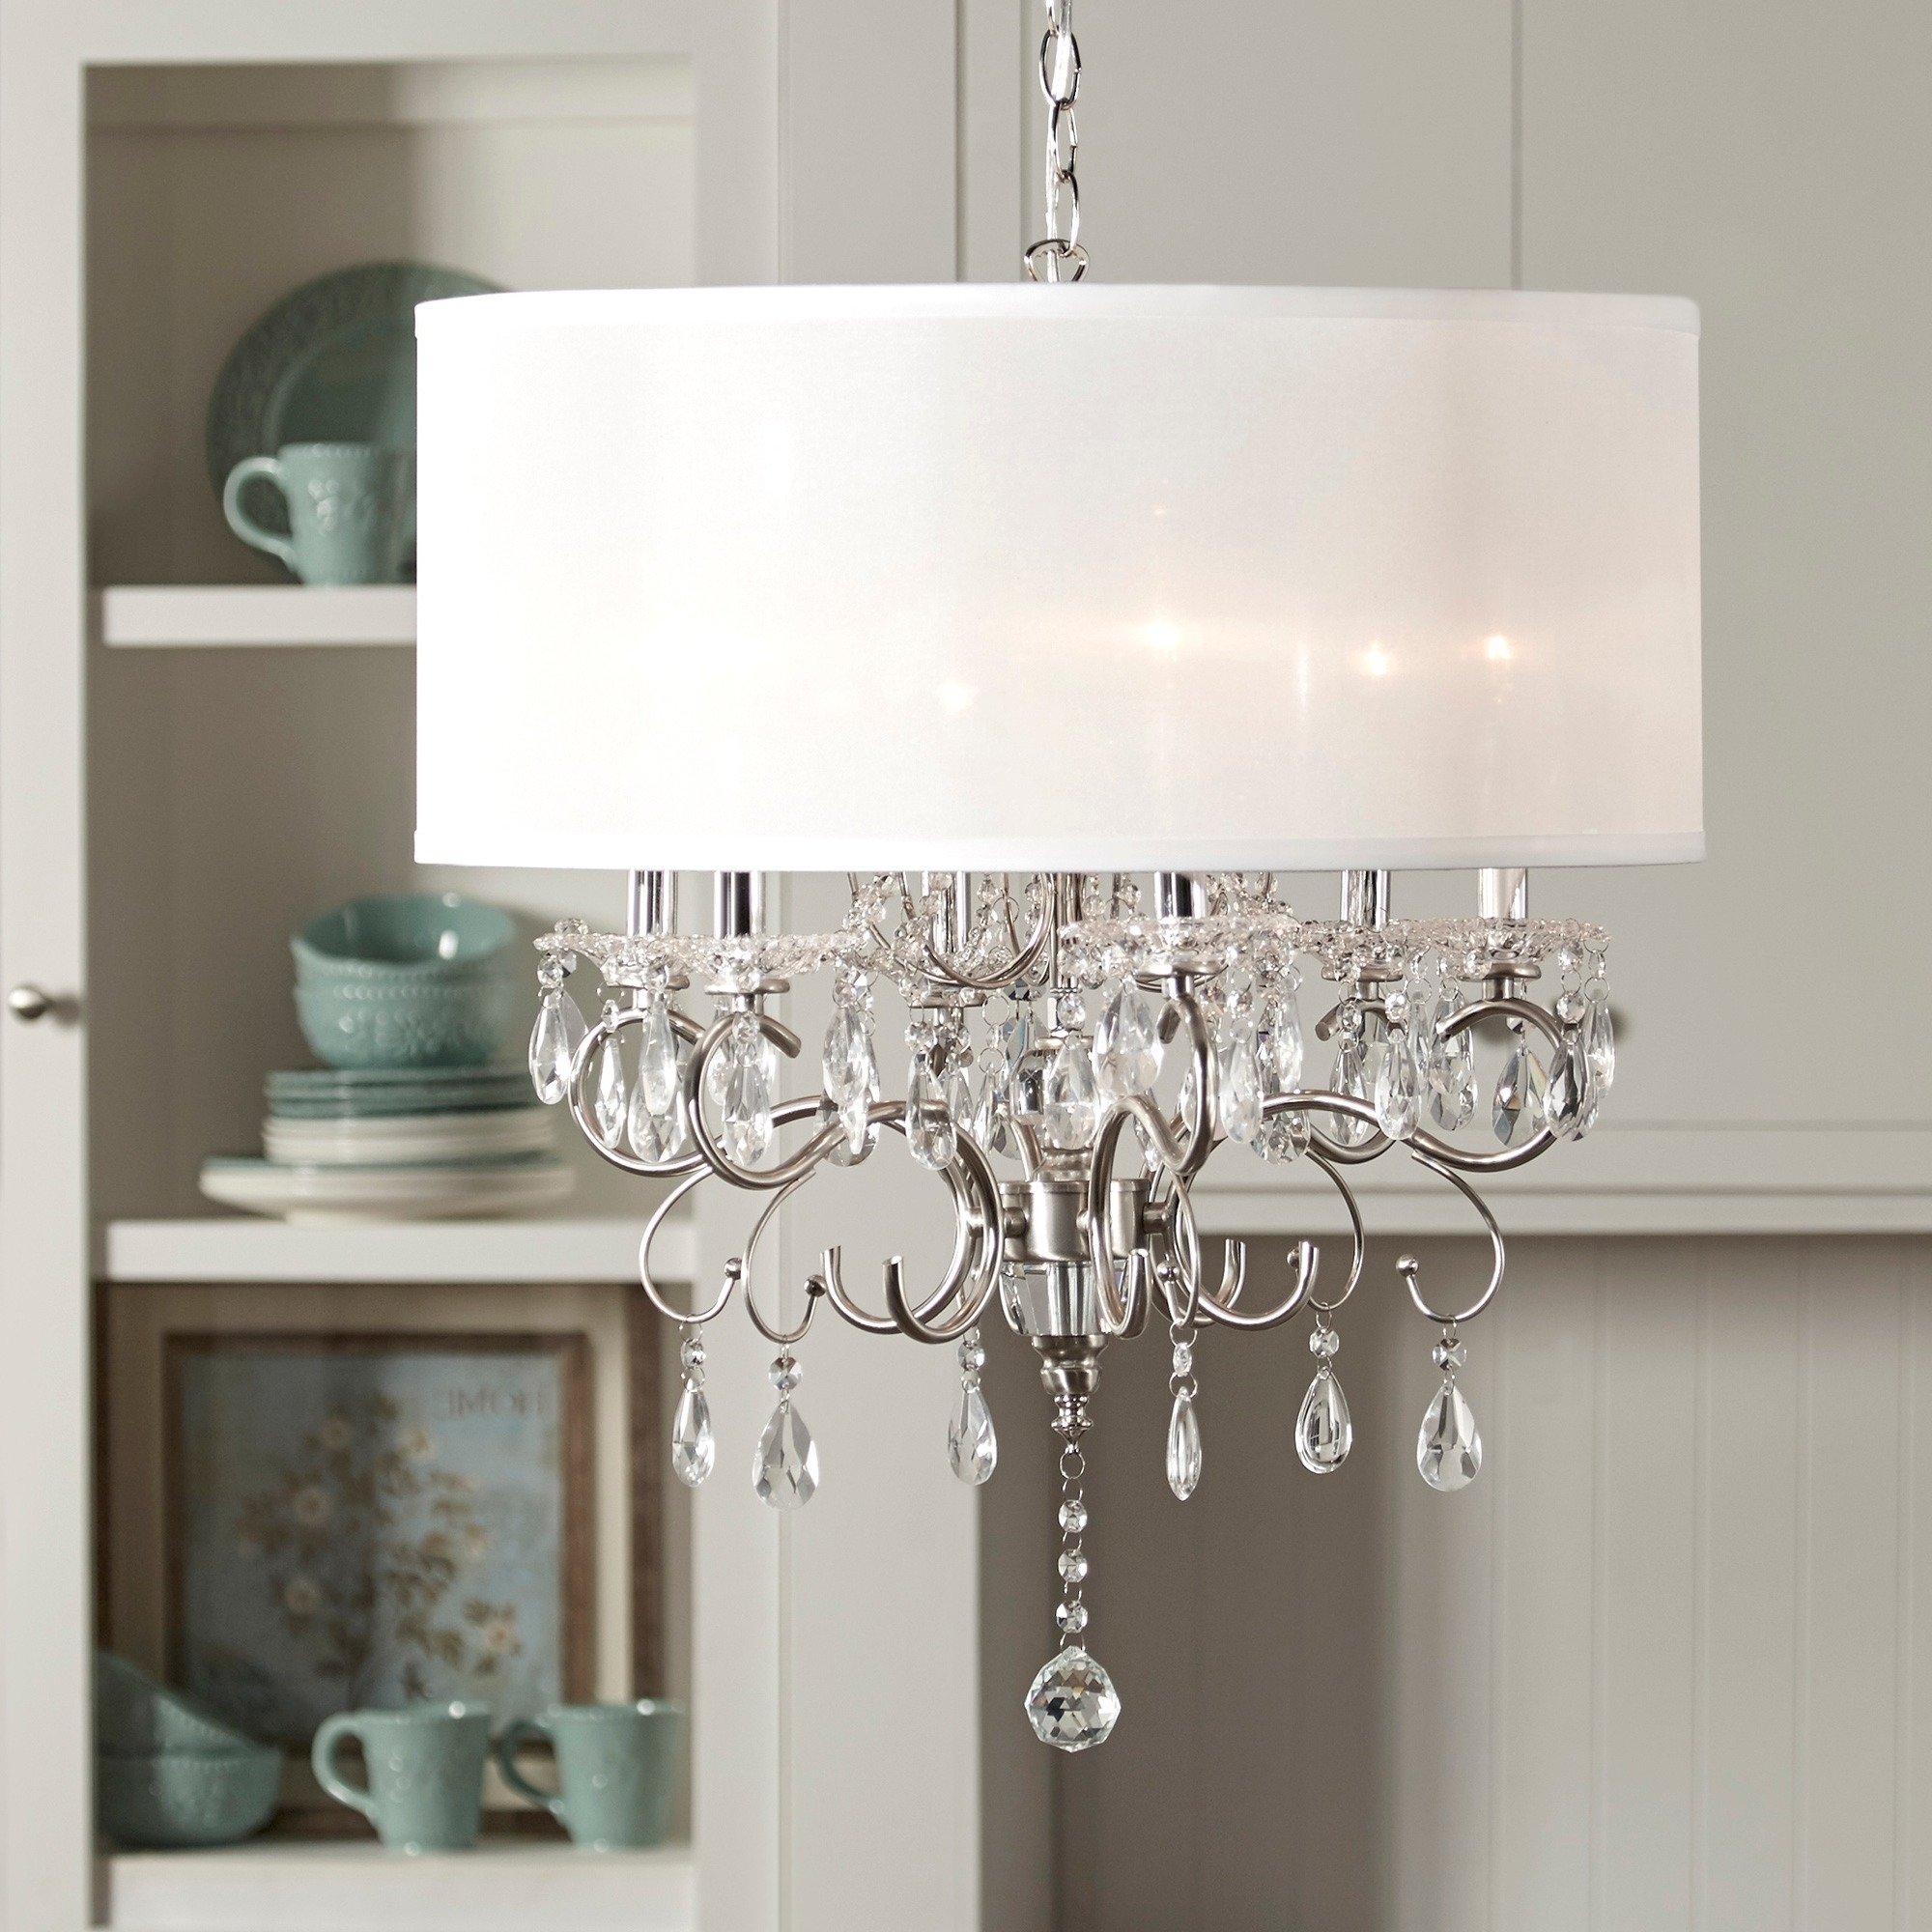 Chandelier Light Shades For Latest Excellent Light Shades Of Grey Html Purple Names Shade Blue (View 4 of 20)